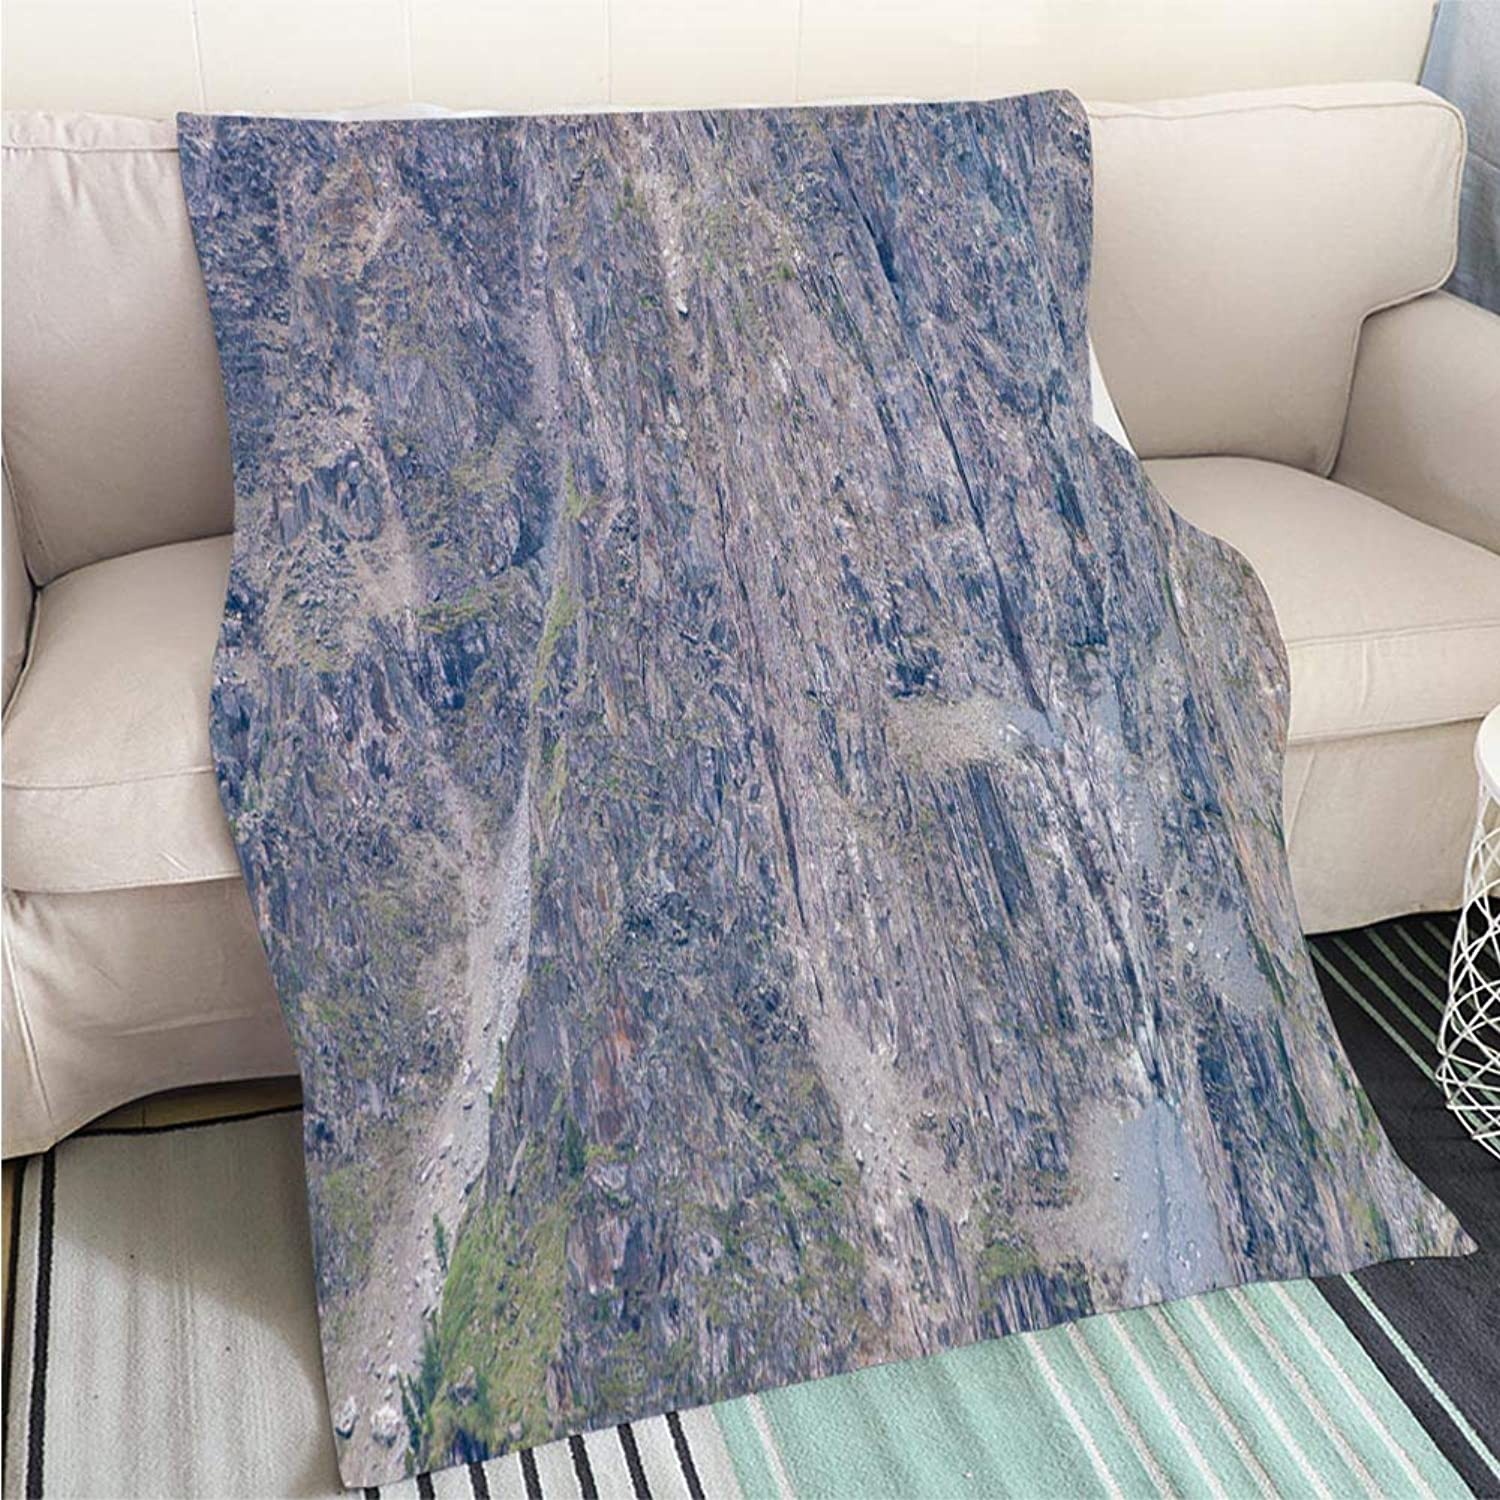 Breathable Flannel Warm Weighted Blanket Mountainside Background with Trees Detailed Texture of steep Rocky Slope Close up Giant Rock Majestic Nature Perfect for Couch Sofa or Bed Cool Quilt